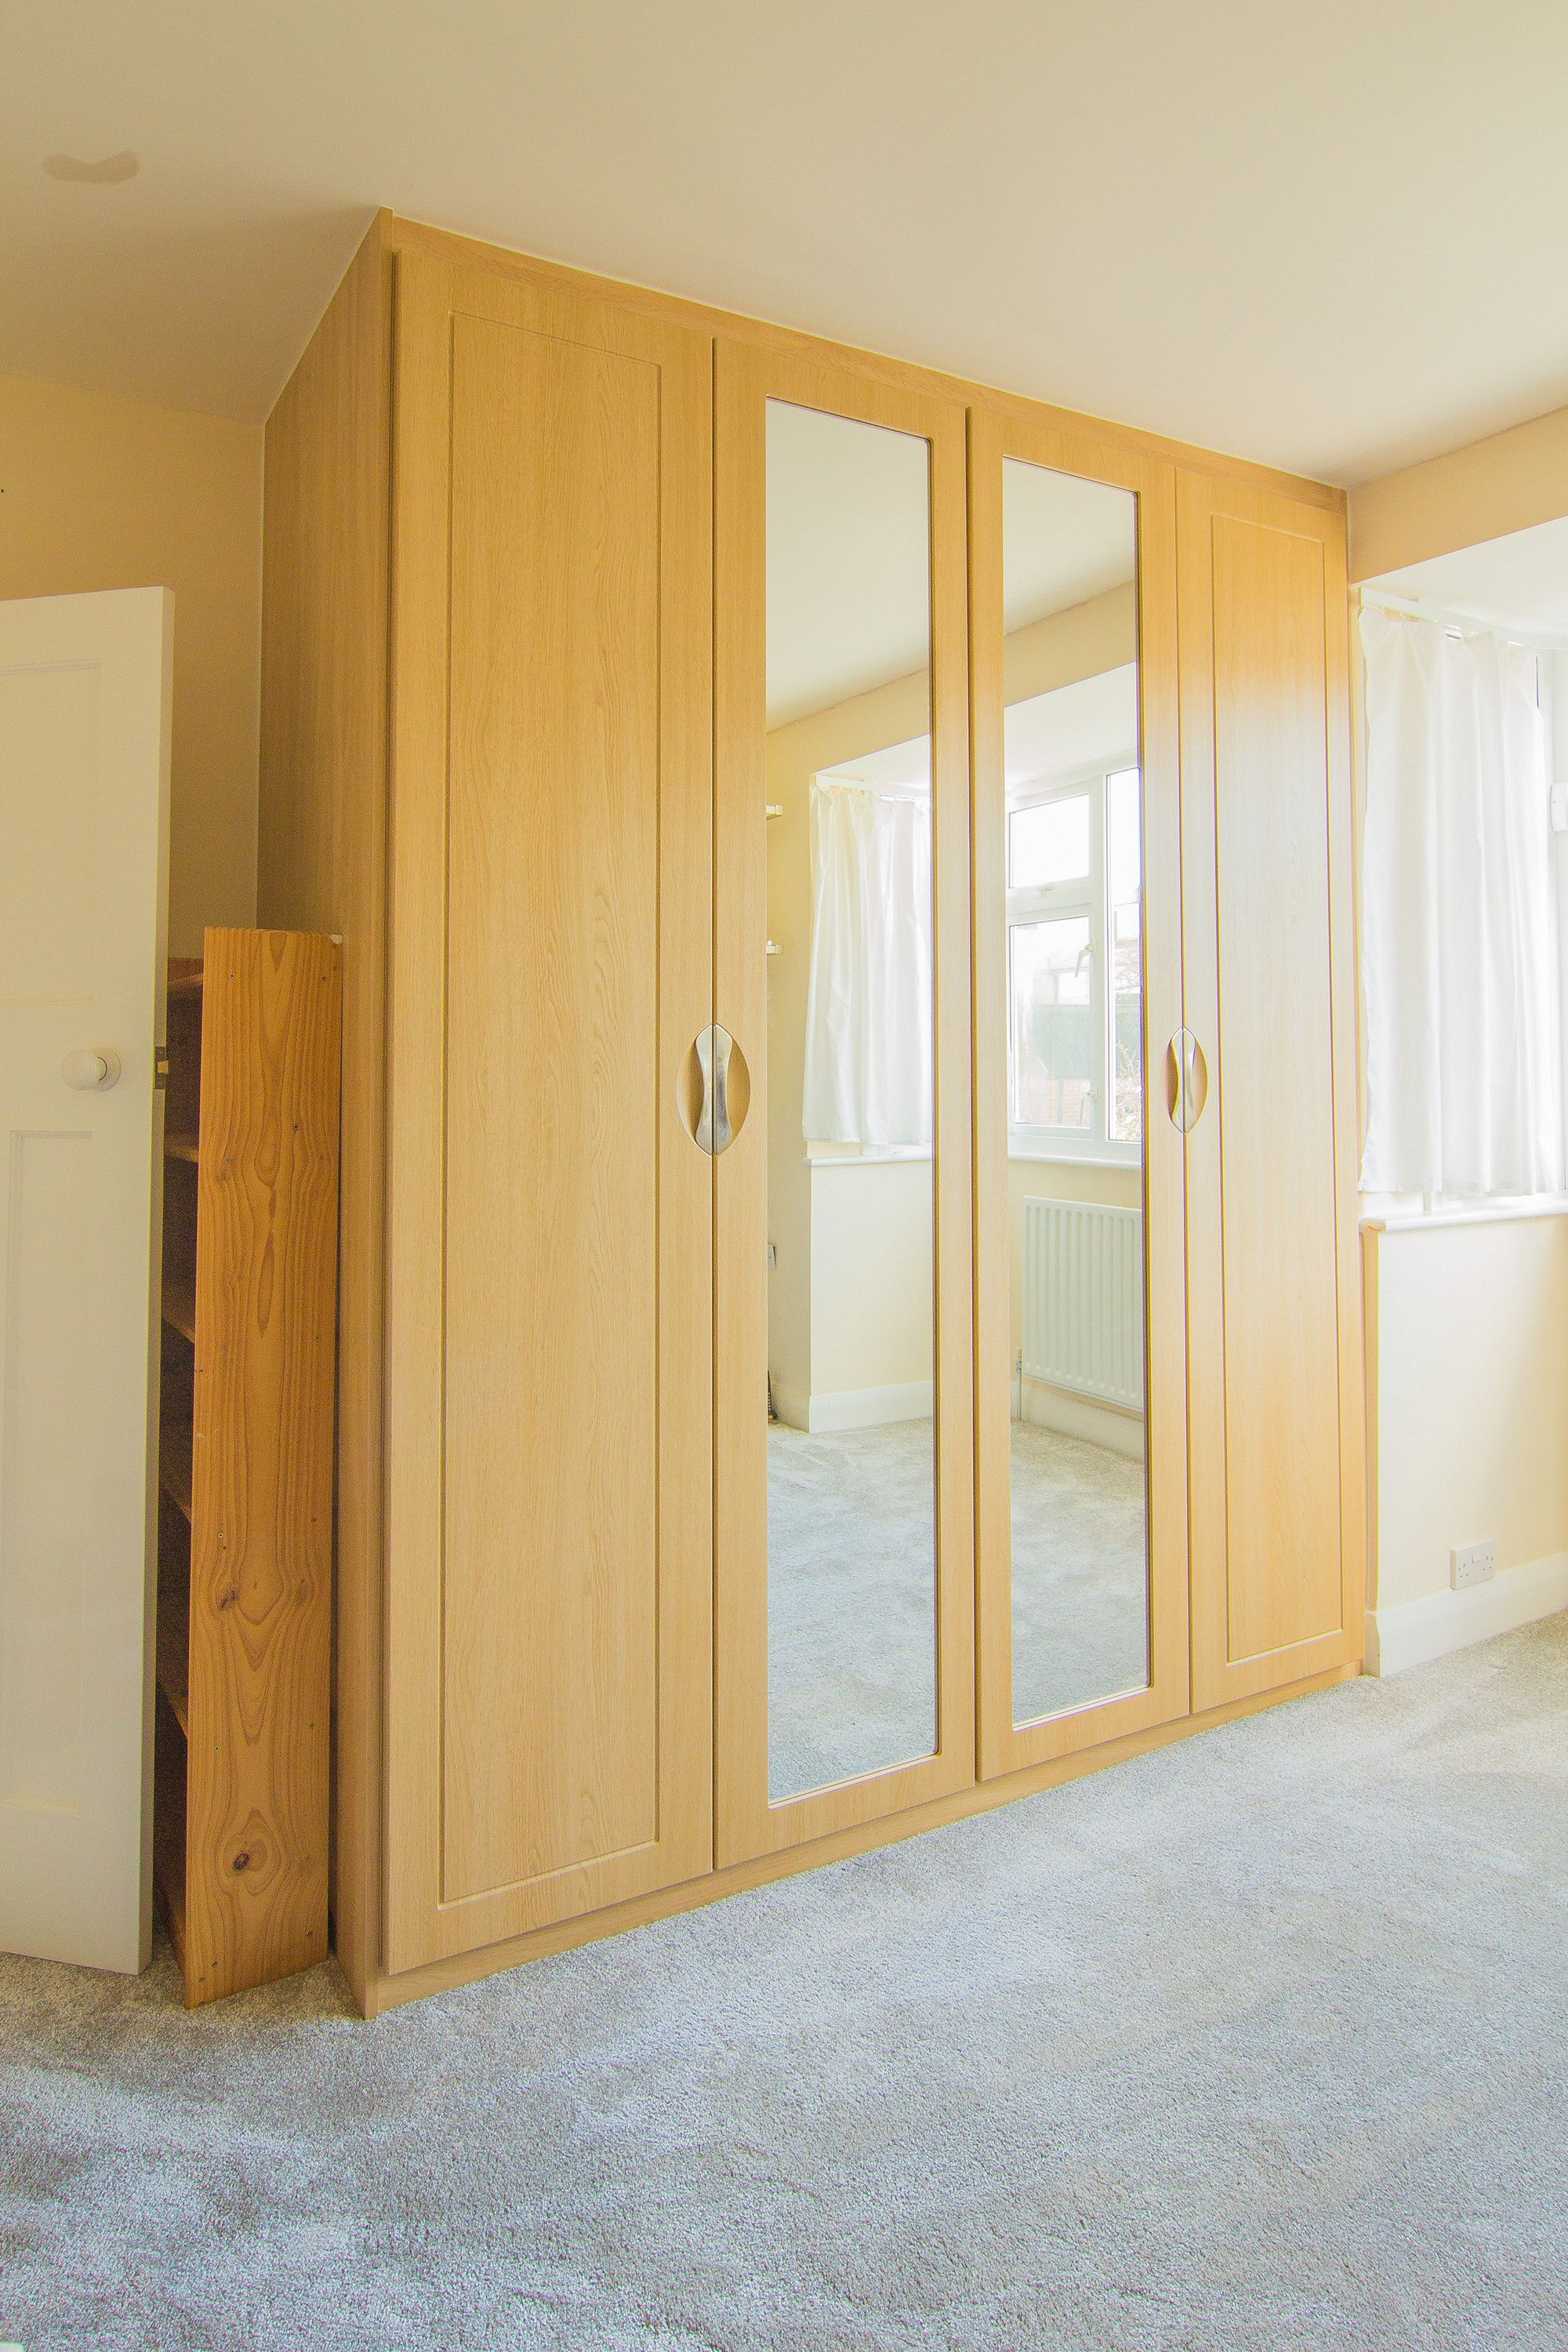 Bespoke Oak Ed Hinged Door Wardrobe With Mirror Doors Price This Up For Your Home